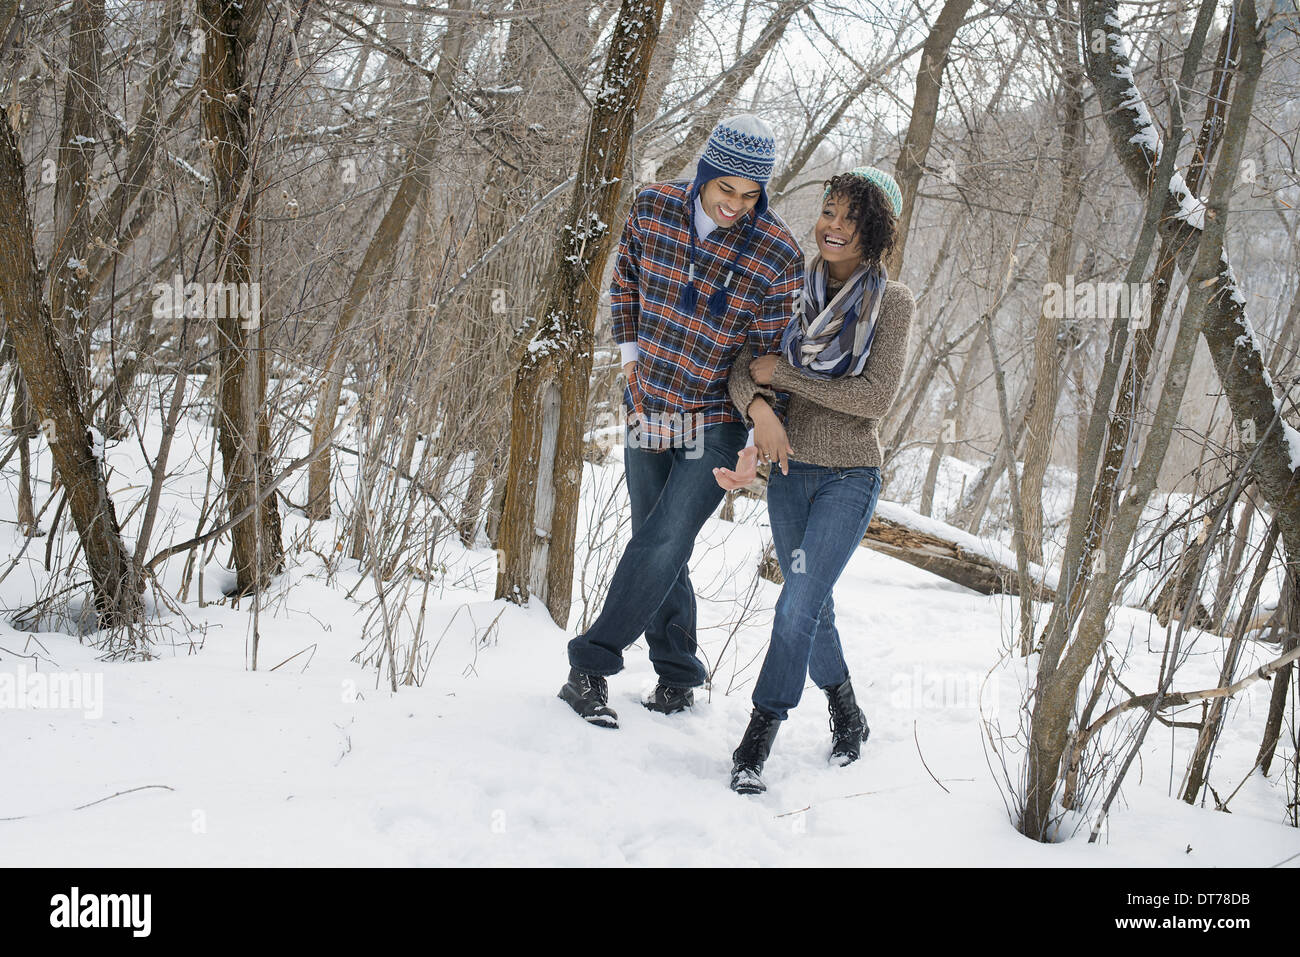 Winter scenery with snow on the ground. A couple arm in arm walking through the woods. - Stock Image